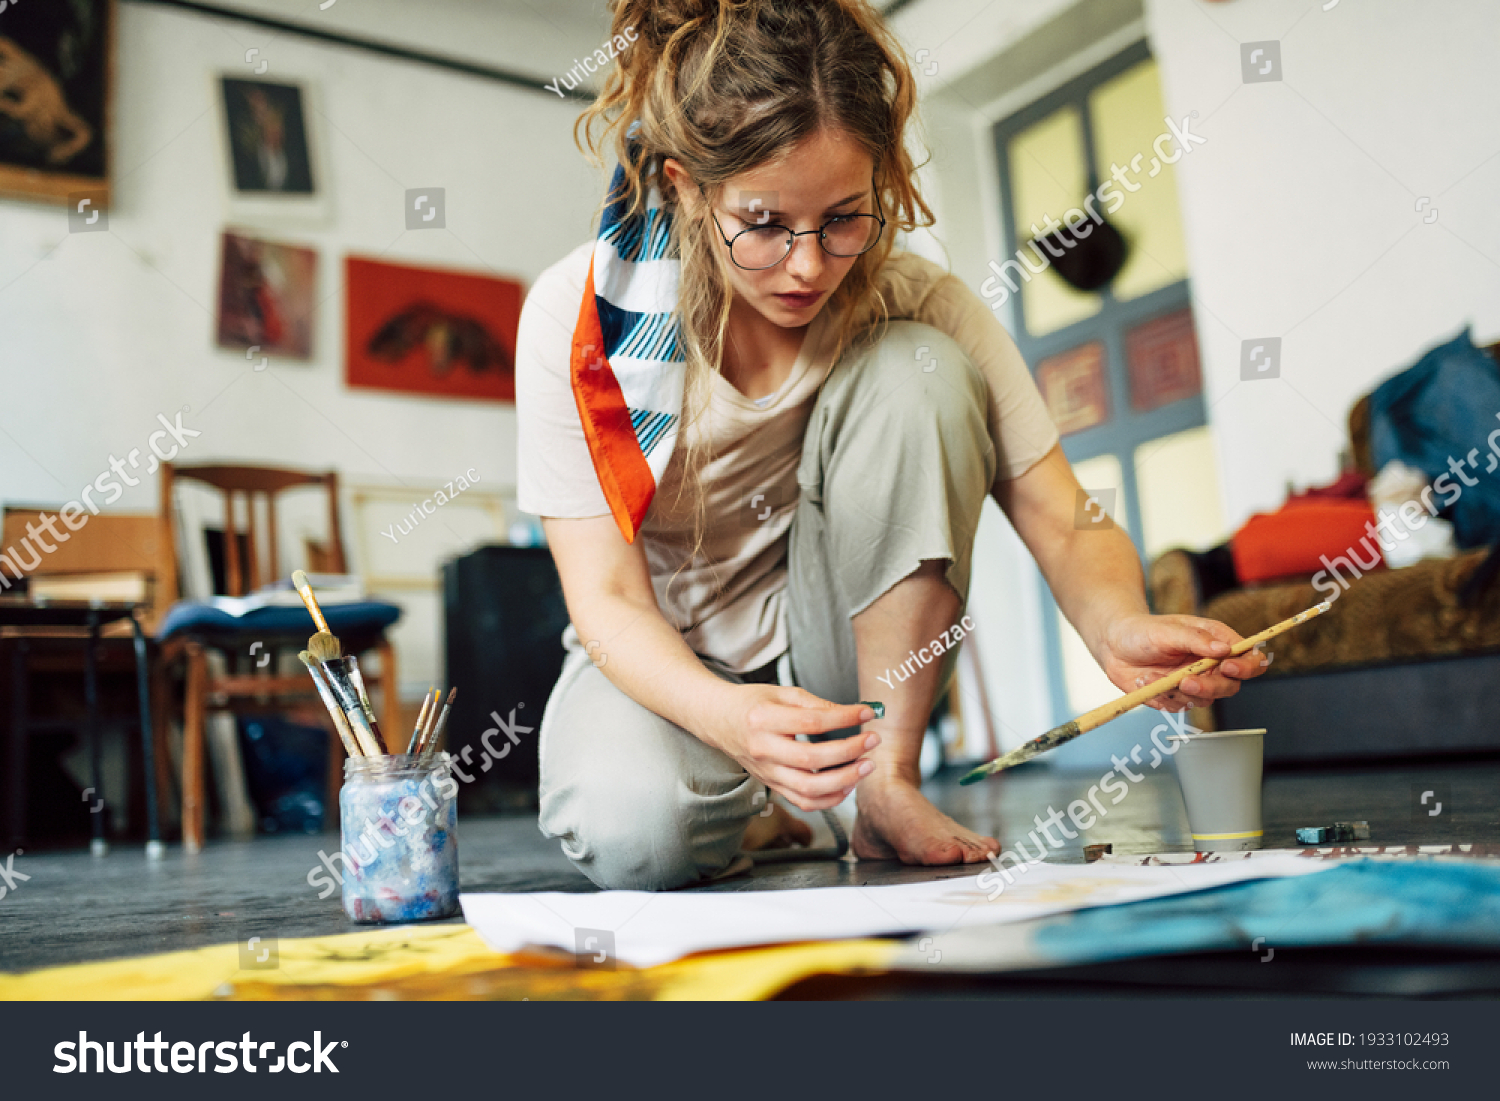 Horizontal image of a pretty female artist sitting on the floor in the art studio and painting on paper with a brush. A woman painter with glasses painting with watercolors in the workshop. #1933102493